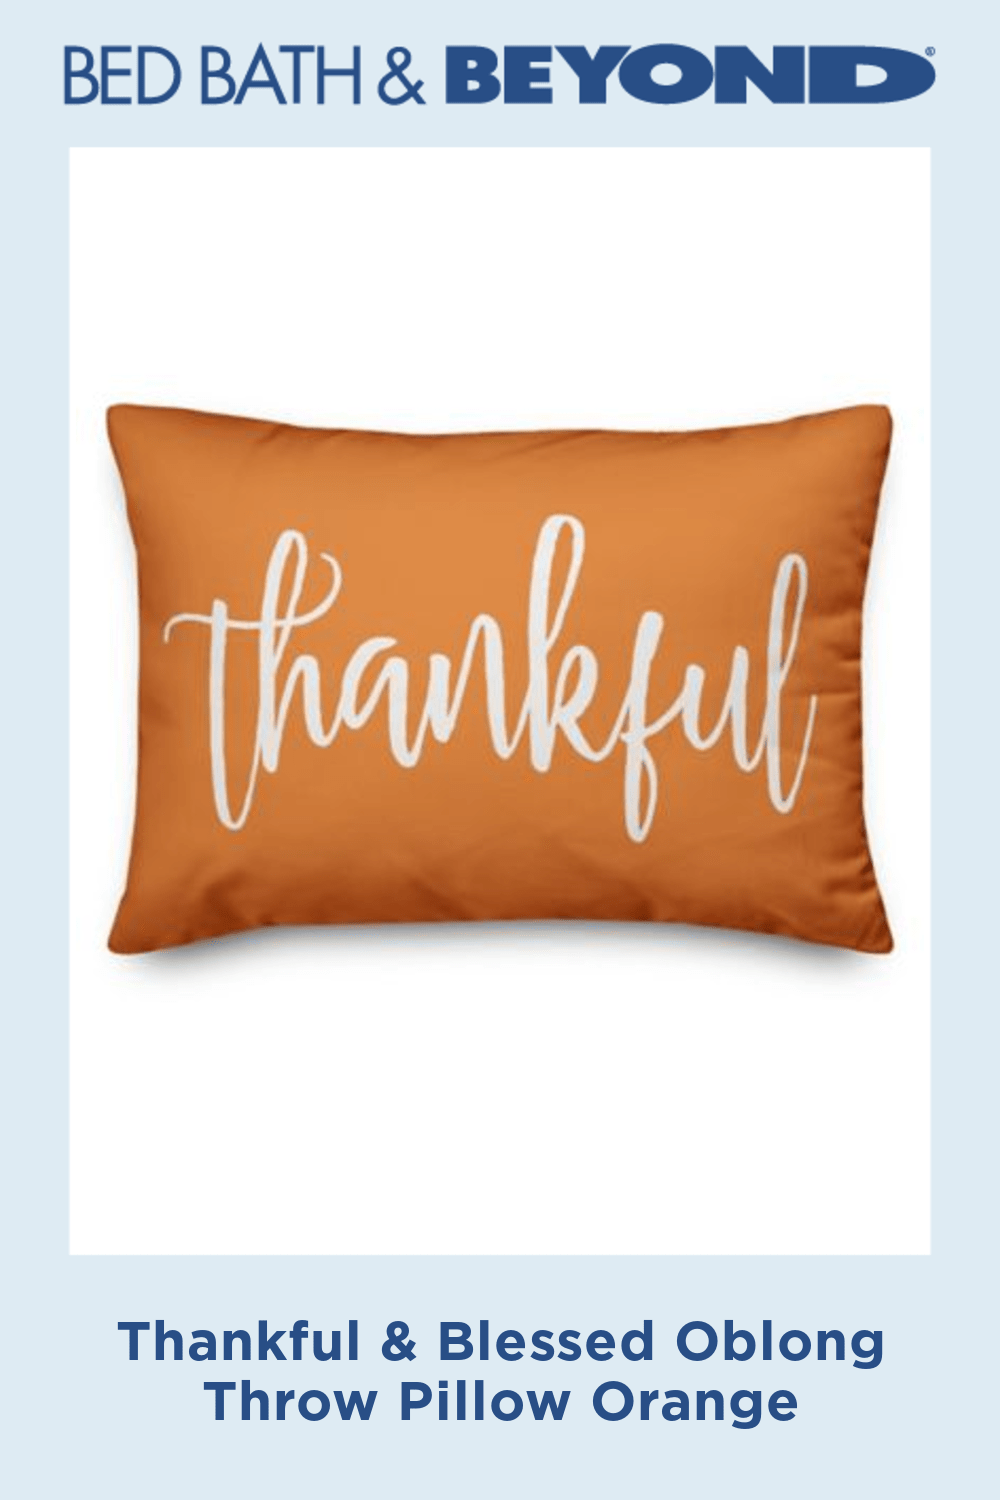 Thankful & Blessed Oblong Throw Pillow   Fall throw pillows